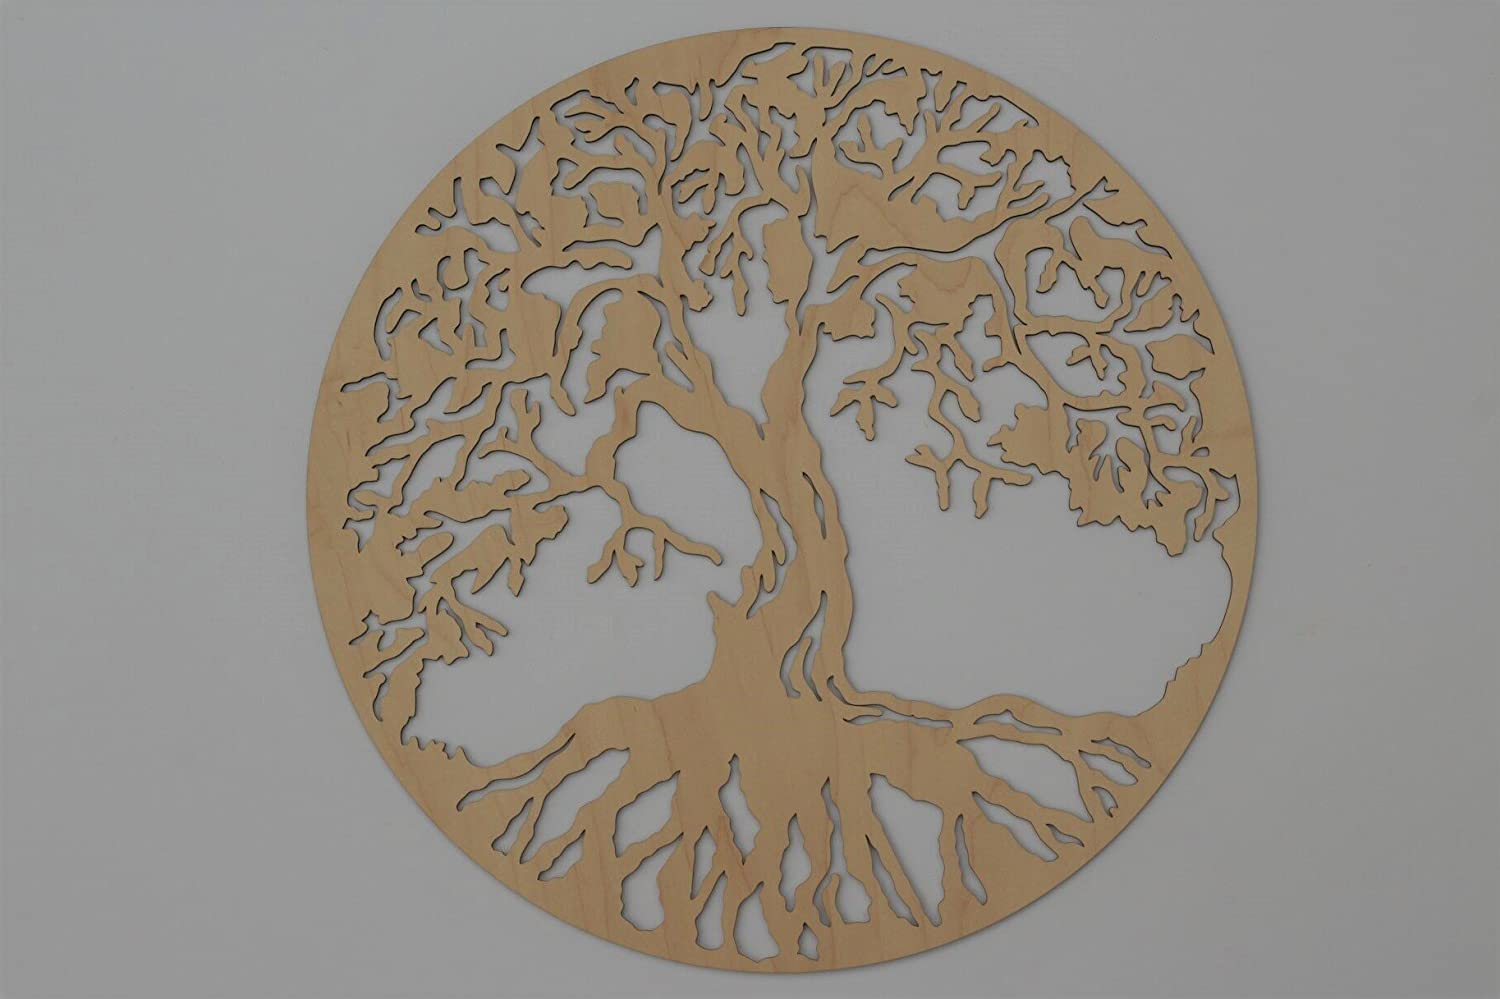 Tree Of Life Round 3d 22 Wooden Wall Art Home Decor Wedding Gift Made In The Usa Beautiful Mother S Day Gift Handmade